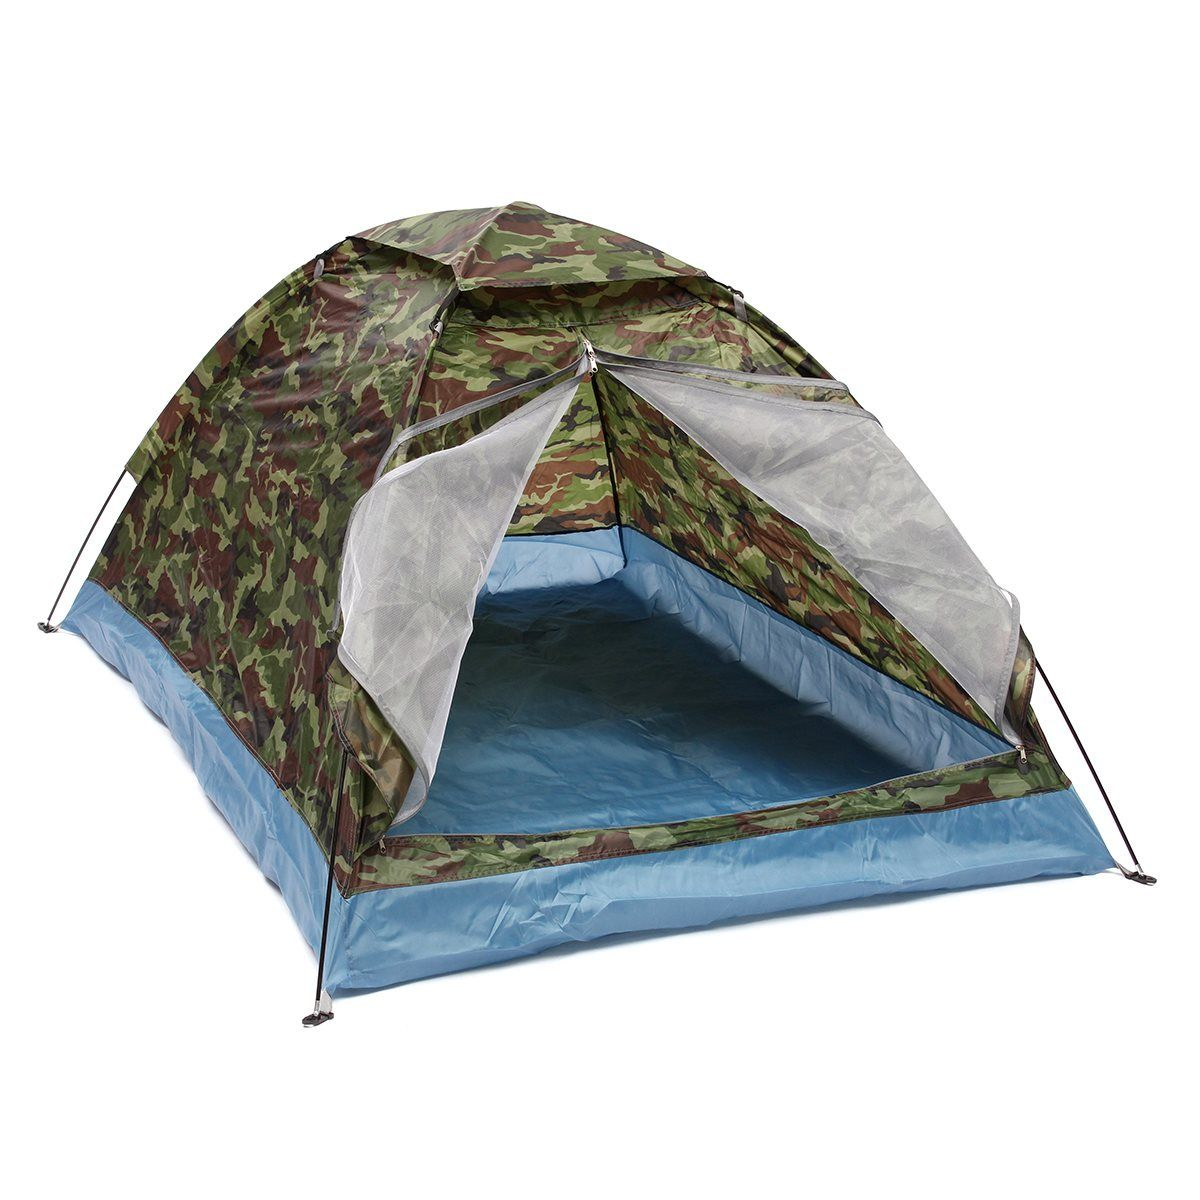 ==> [Free Shipping] Buy Best Outdoor 200140110cm Oxford cloth PU waterproof coating 4 seasons 2 people single layer Camouflage camping hiking tent Online with LOWEST Price | 32783151776